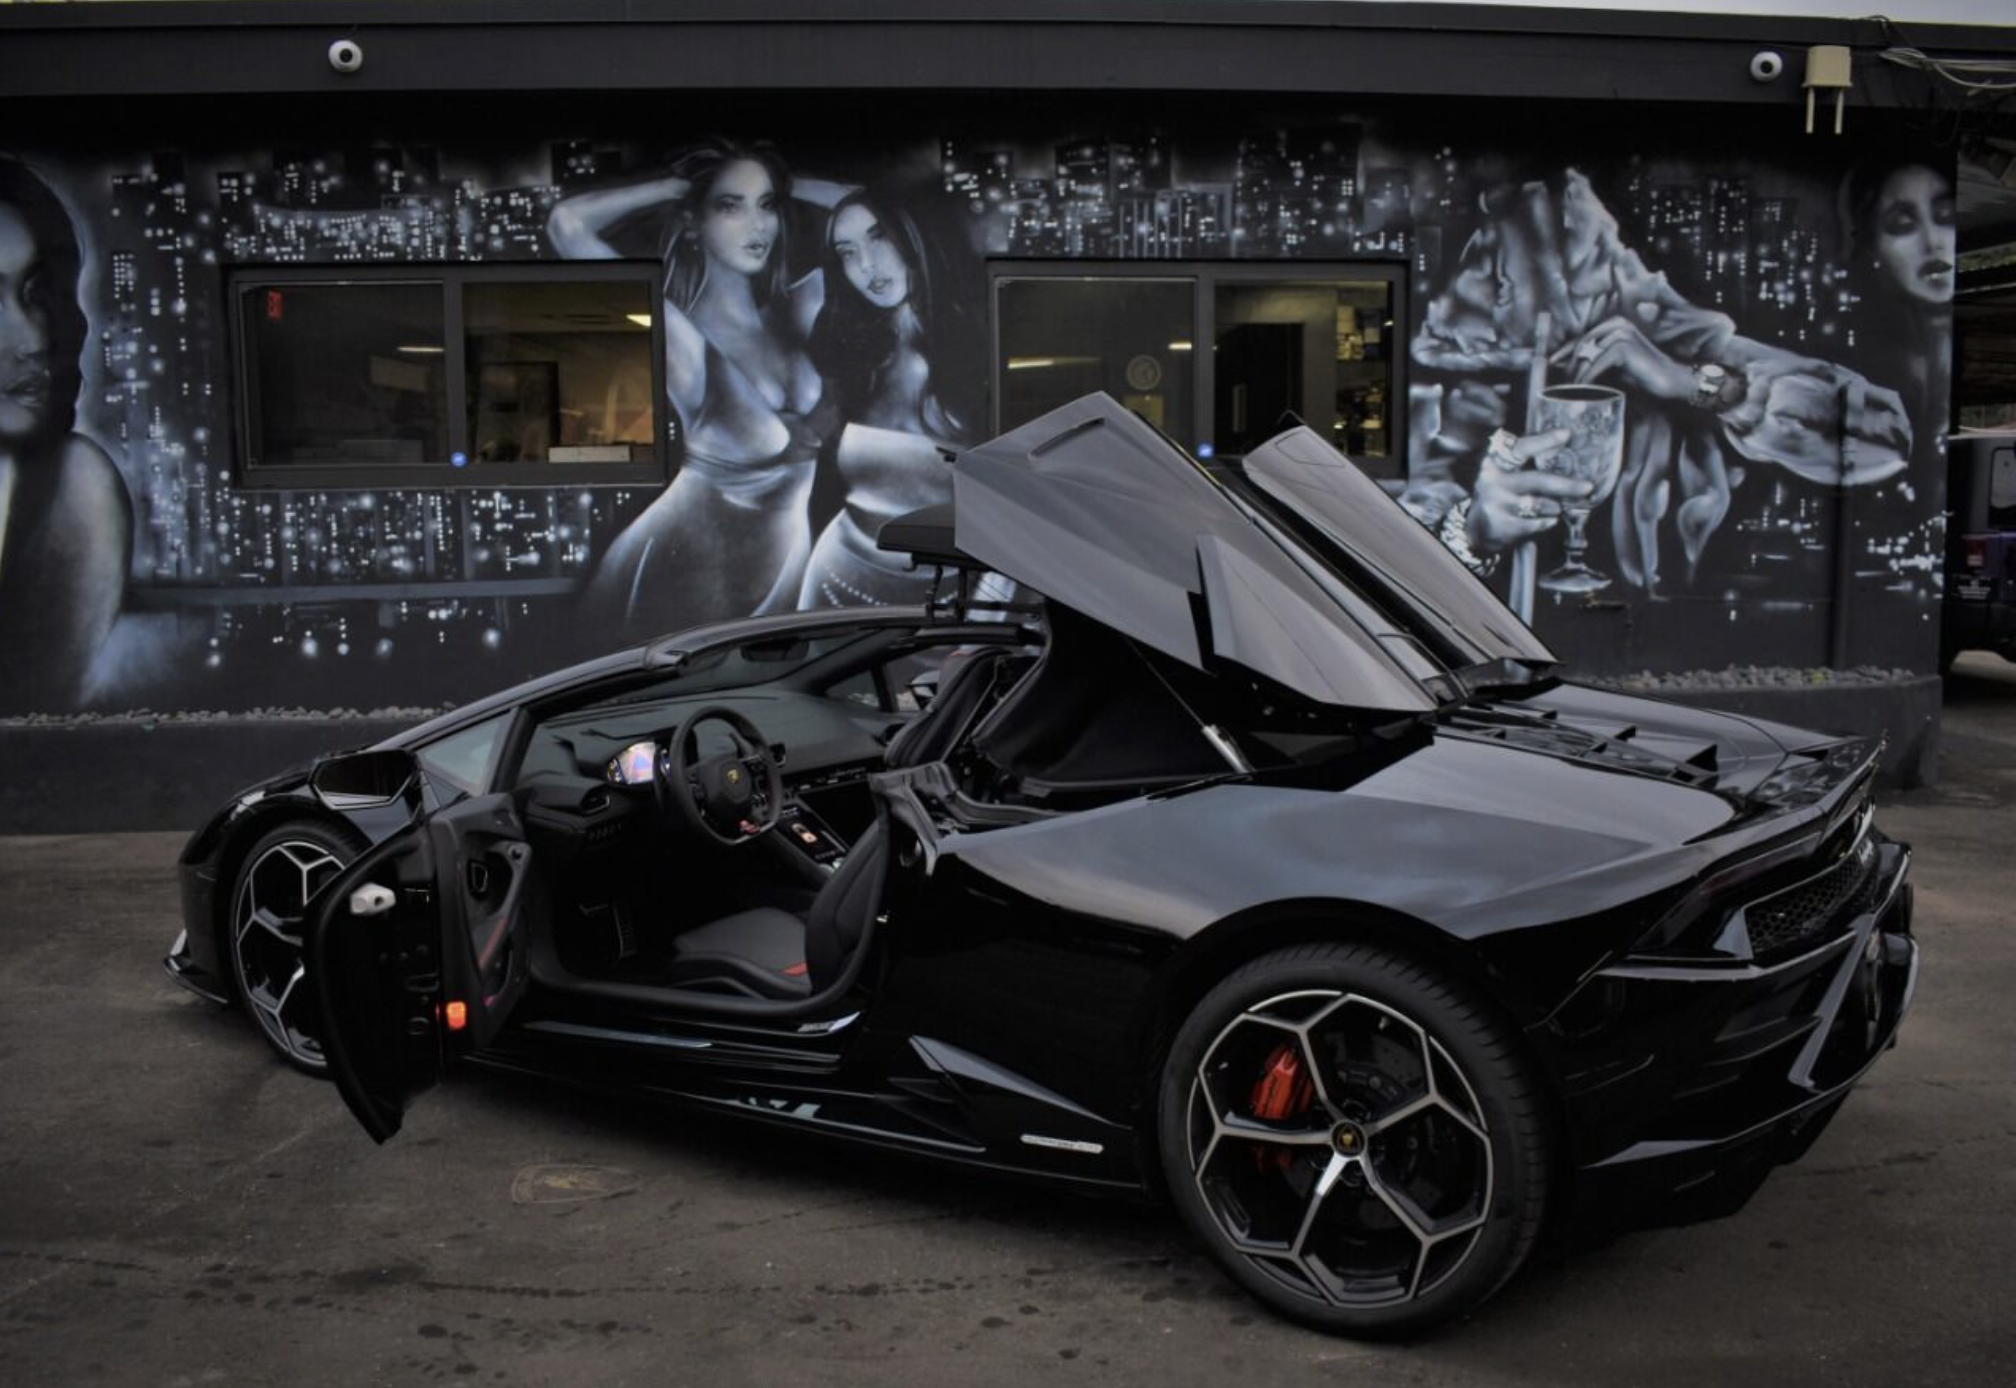 Image #10 of our  LAMBORGHINI HURACAN EVO SPYDER BLACK    In Miami Fort Lauderdale Palm Beach South Florida